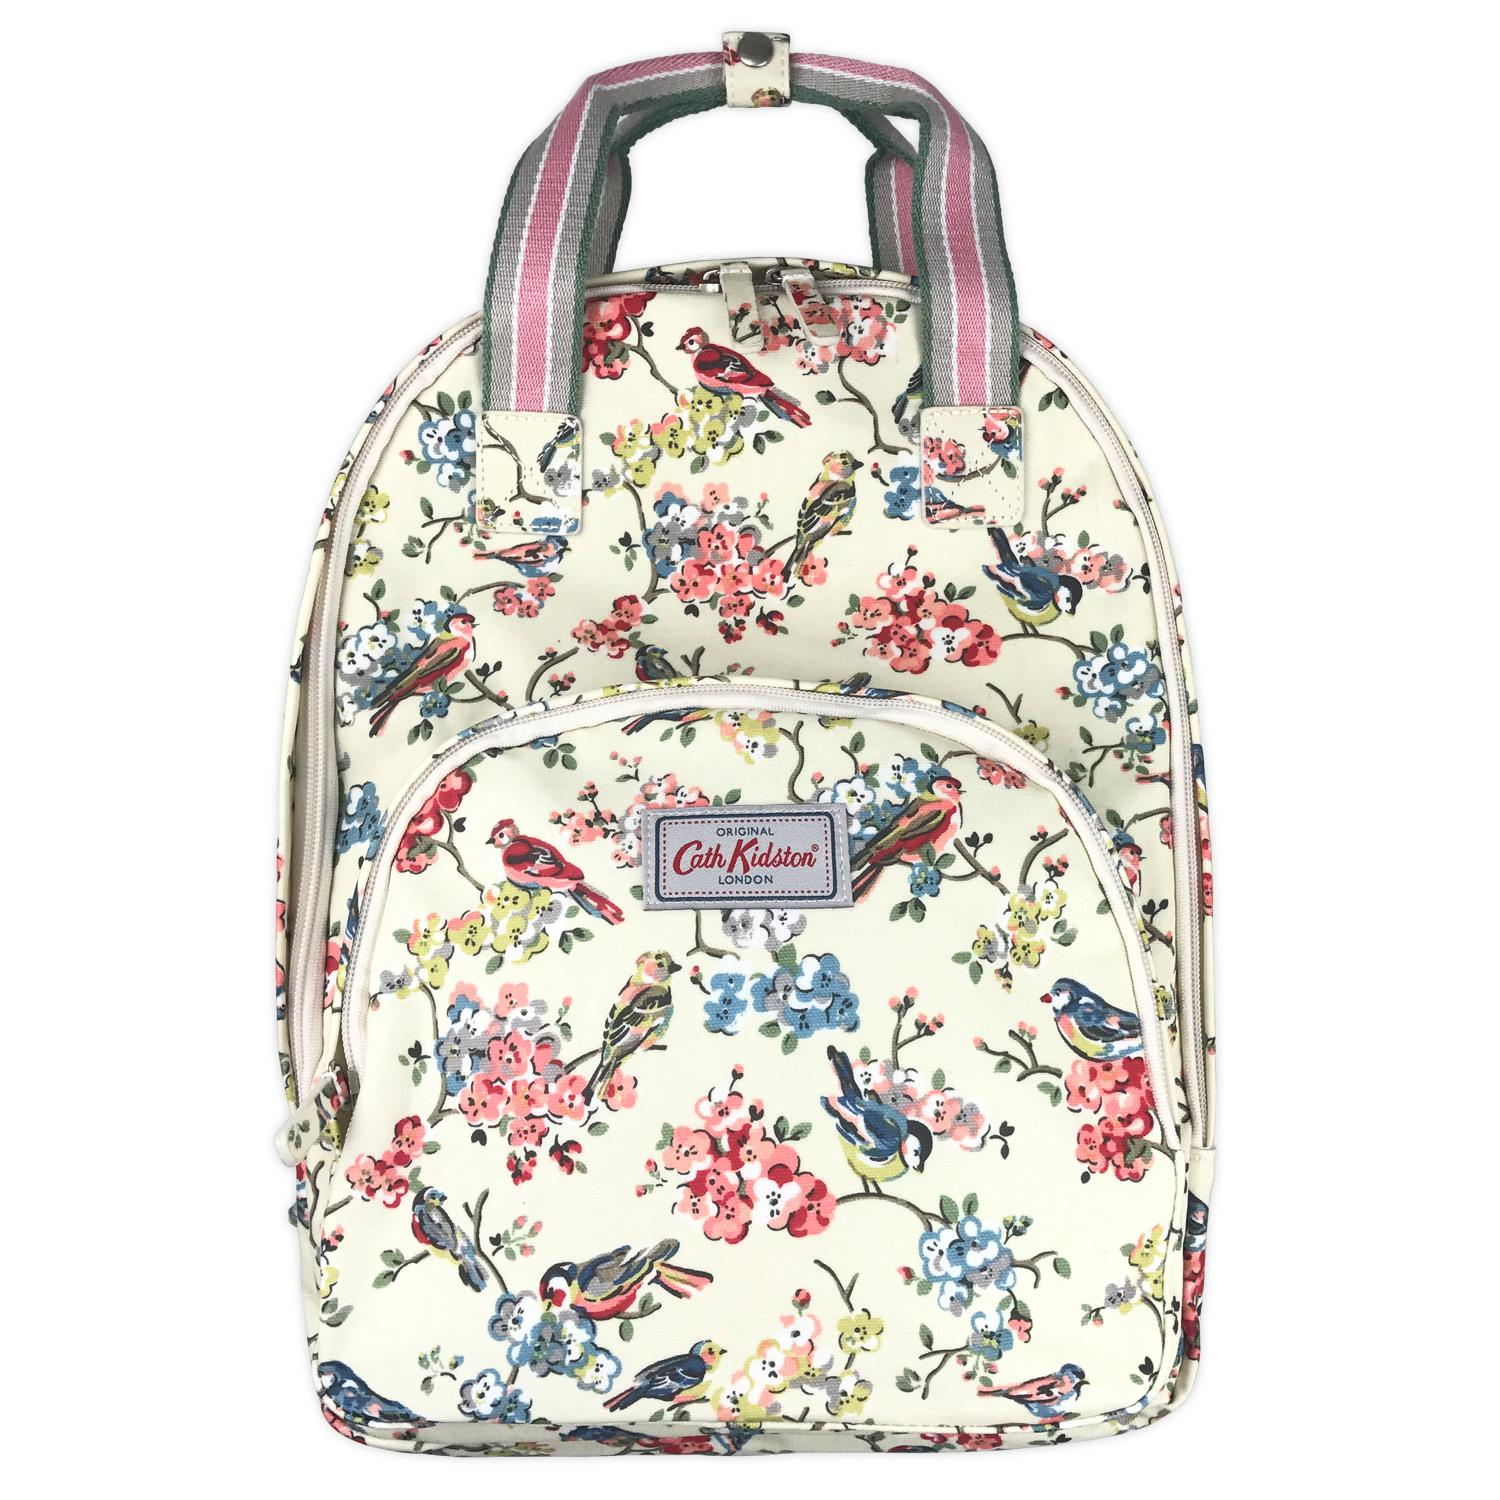 561994d48bbdd Latest Cath Kidston,Miu Miu Laptop Backpacks Products | Enjoy Huge ...